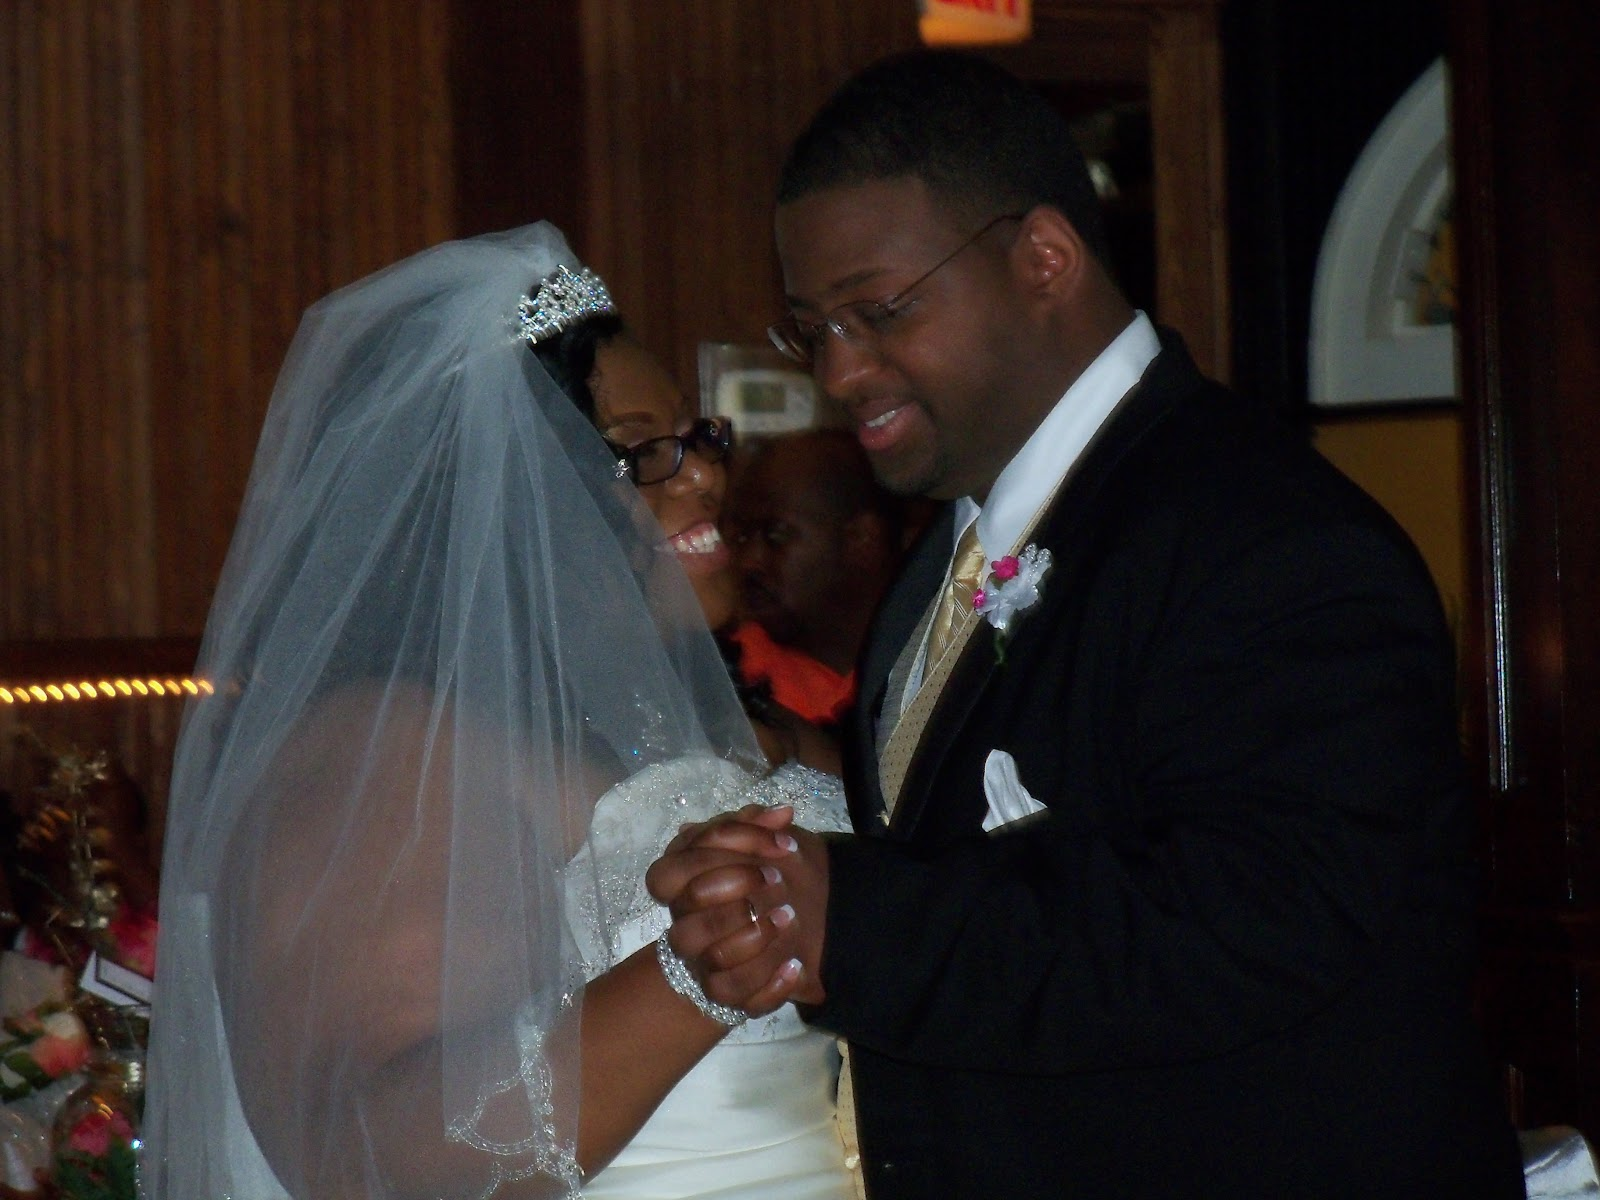 MeChaia Lunn and Clyde Longs wedding - 101_4622.JPG